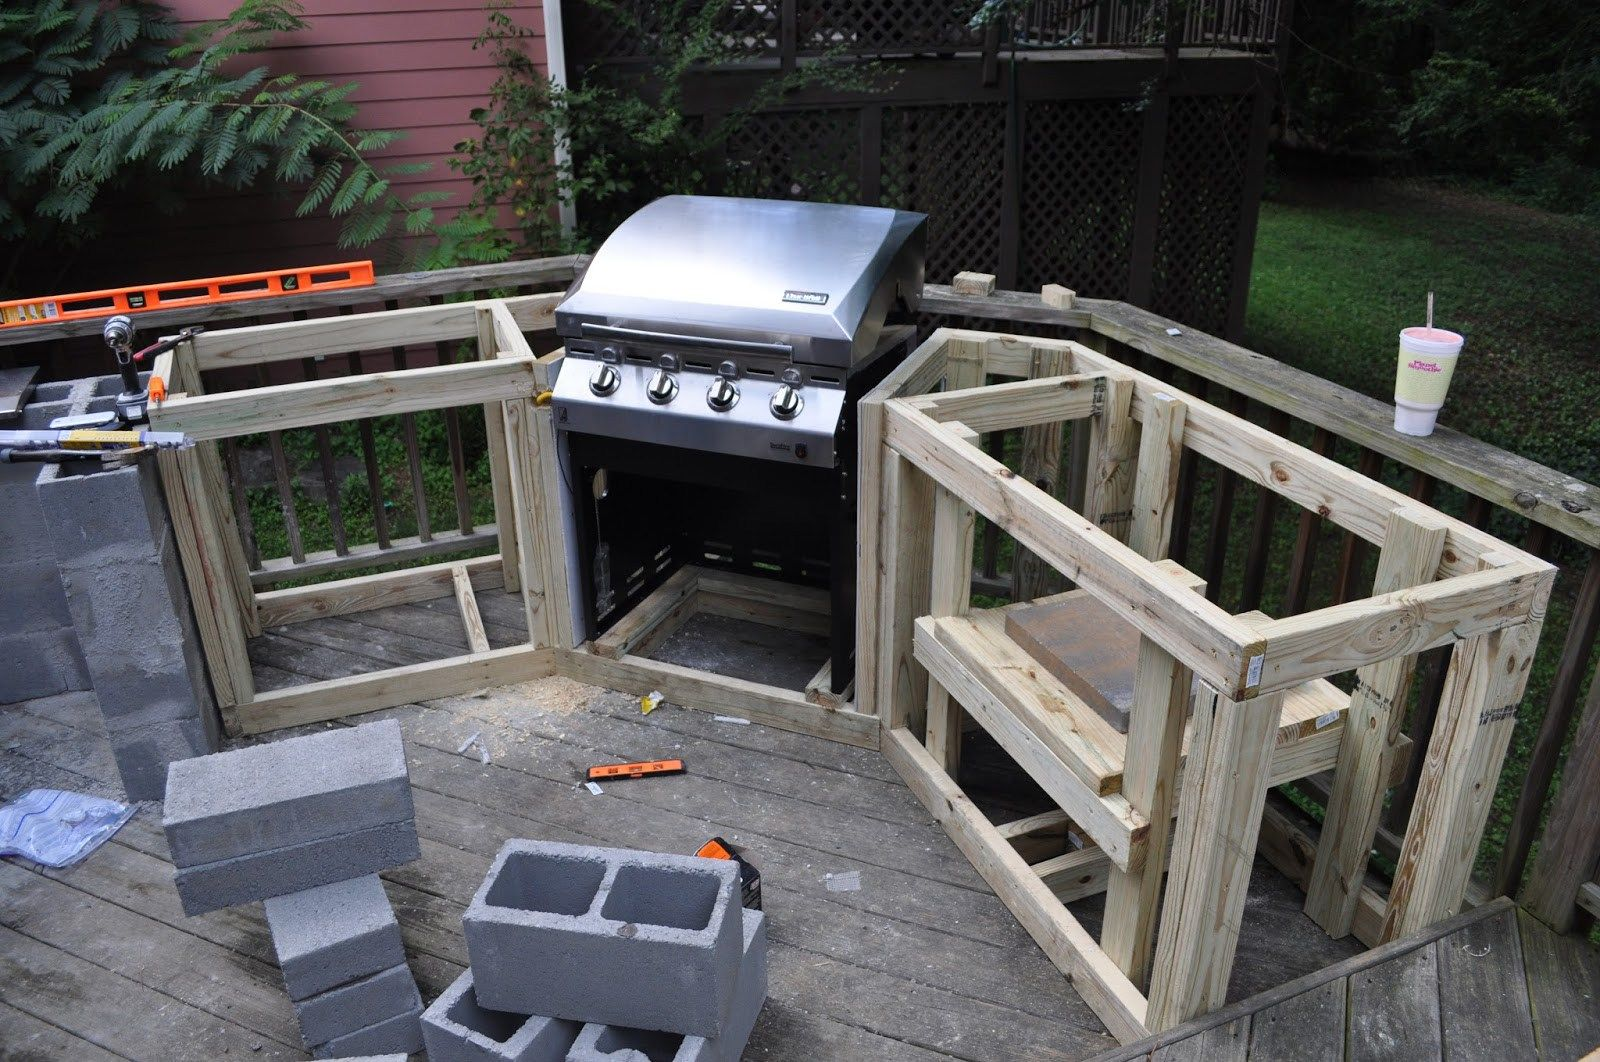 How To Build Your Own Outdoor Kitchen (For A Fraction Of The Cost) | Hard  Lemonade, Grilling And Kitchens